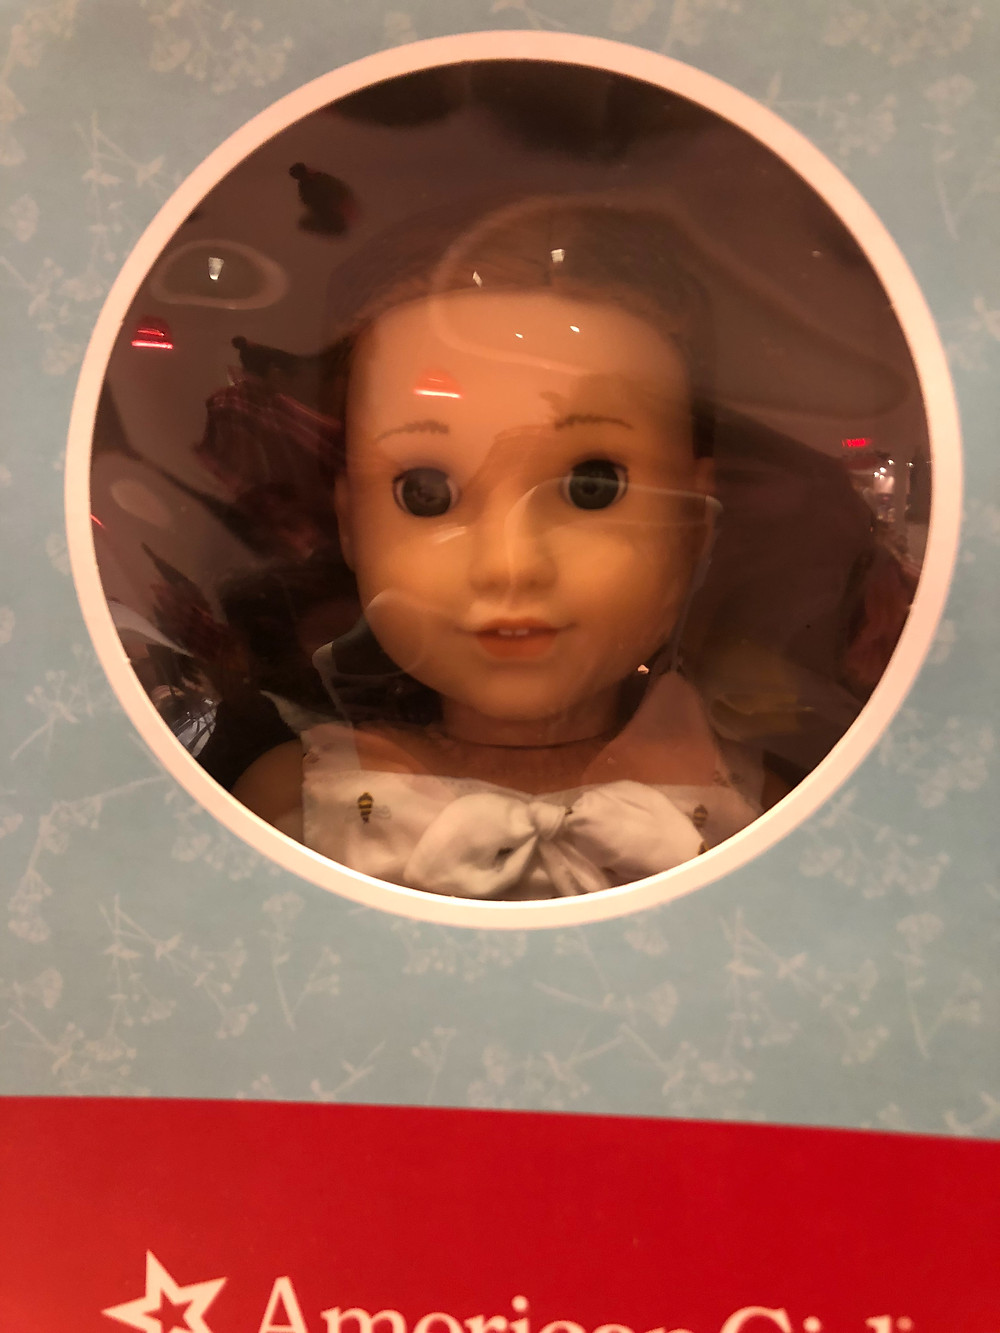 American Girl Doll, GOTY 2019, Girl of the Year 2019, Blaire Wilson, American Girl Blaire, American Girl Doll Blaire, American Girl Blaire WilsonAmerican Girl Doll, GOTY 2019, Girl of the Year 2019, Blaire Wilson, American Girl Blaire, American Girl Doll Blaire, American Girl Blaire WilsonAmerican Girl Doll, GOTY 2019, Girl of the Year 2019, Blaire Wilson, American Girl Blaire, American Girl Doll Blaire, American Girl Blaire WilsonAmerican Girl Doll, GOTY 2019, Girl of the Year 2019, Blaire Wilson, American Girl Blaire, American Girl Doll Blaire, American Girl Blaire WilsonAmerican Girl Doll, GOTY 2019, Girl of the Year 2019, Blaire Wilson, American Girl Blaire, American Girl Doll Blaire, American Girl Blaire WilsonAmerican Girl Doll, GOTY 2019, Girl of the Year 2019, Blaire Wilson, American Girl Blaire, American Girl Doll Blaire, American Girl Blaire WilsonAmerican Girl Doll, GOTY 2019, Girl of the Year 2019, Blaire Wilson, American Girl Blaire, American Girl Doll Blaire, American Girl Blaire WilsonAmerican Girl Doll, GOTY 2019, Girl of the Year 2019, Blaire Wilson, American Girl Blaire, American Girl Doll Blaire, American Girl Blaire WilsonAmerican Girl Doll, GOTY 2019, Girl of the Year 2019, Blaire Wilson, American Girl Blaire, American Girl Doll Blaire, American Girl Blaire WilsonAmerican Girl Doll, GOTY 2019, Girl of the Year 2019, Blaire Wilson, American Girl Blaire, American Girl Doll Blaire, American Girl Blaire WilsonAmerican Girl Doll, GOTY 2019, Girl of the Year 2019, Blaire Wilson, American Girl Blaire, American Girl Doll Blaire, American Girl Blaire WilsonAmerican Girl Doll, GOTY 2019, Girl of the Year 2019, Blaire Wilson, American Girl Blaire, American Girl Doll Blaire, American Girl Blaire WilsonAmerican Girl Doll, GOTY 2019, Girl of the Year 2019, Blaire Wilson, American Girl Blaire, American Girl Doll Blaire, American Girl Blaire Wilson